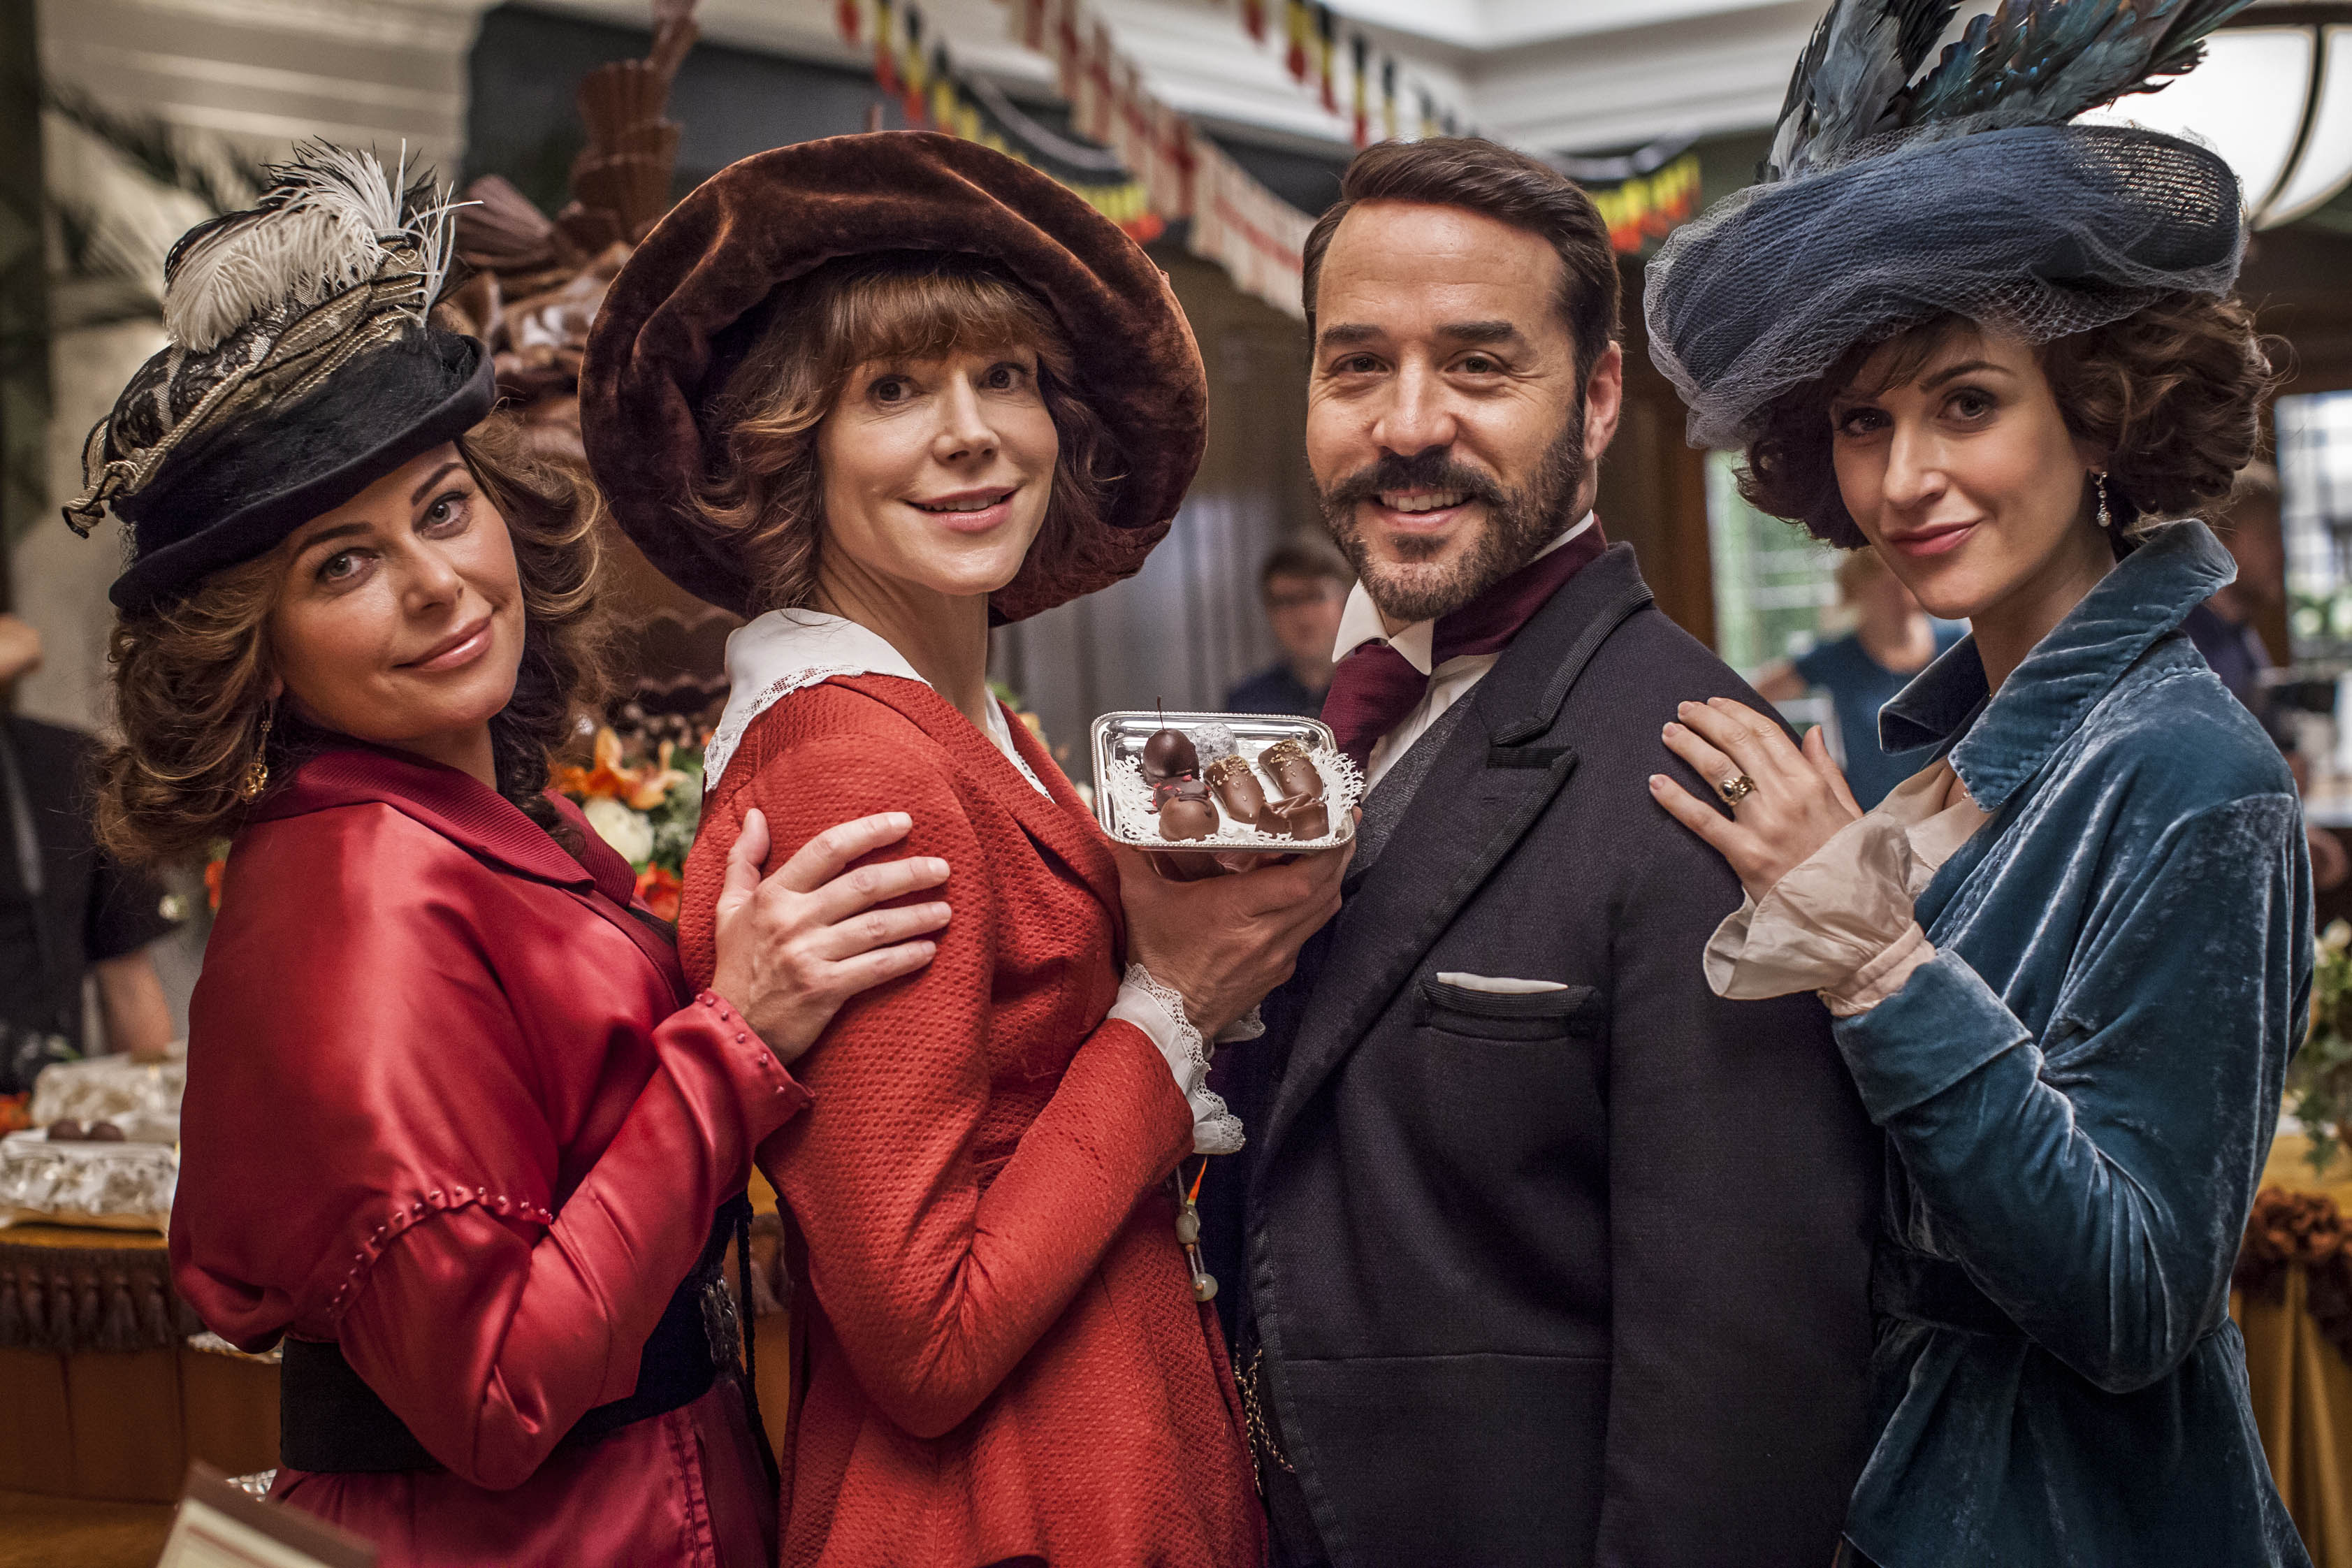 Mr Selfridge series two episode four: Never mind the war, it's all about the chocolate